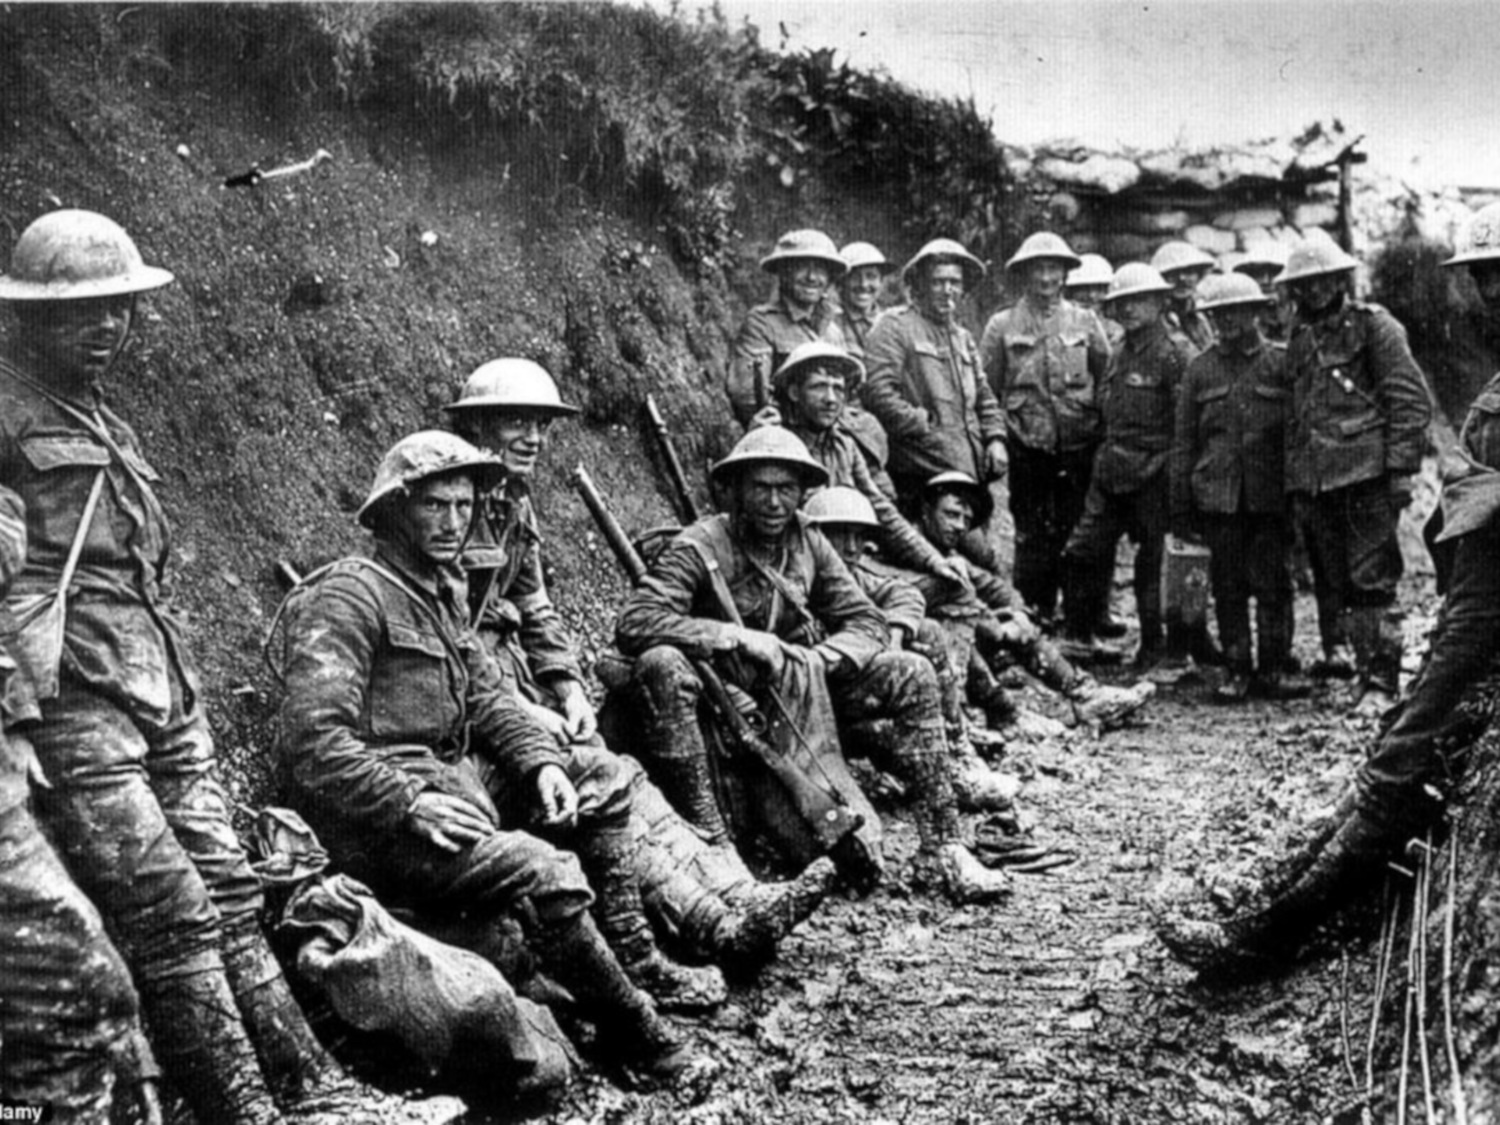 Allied soldiers in the trenches during World War One